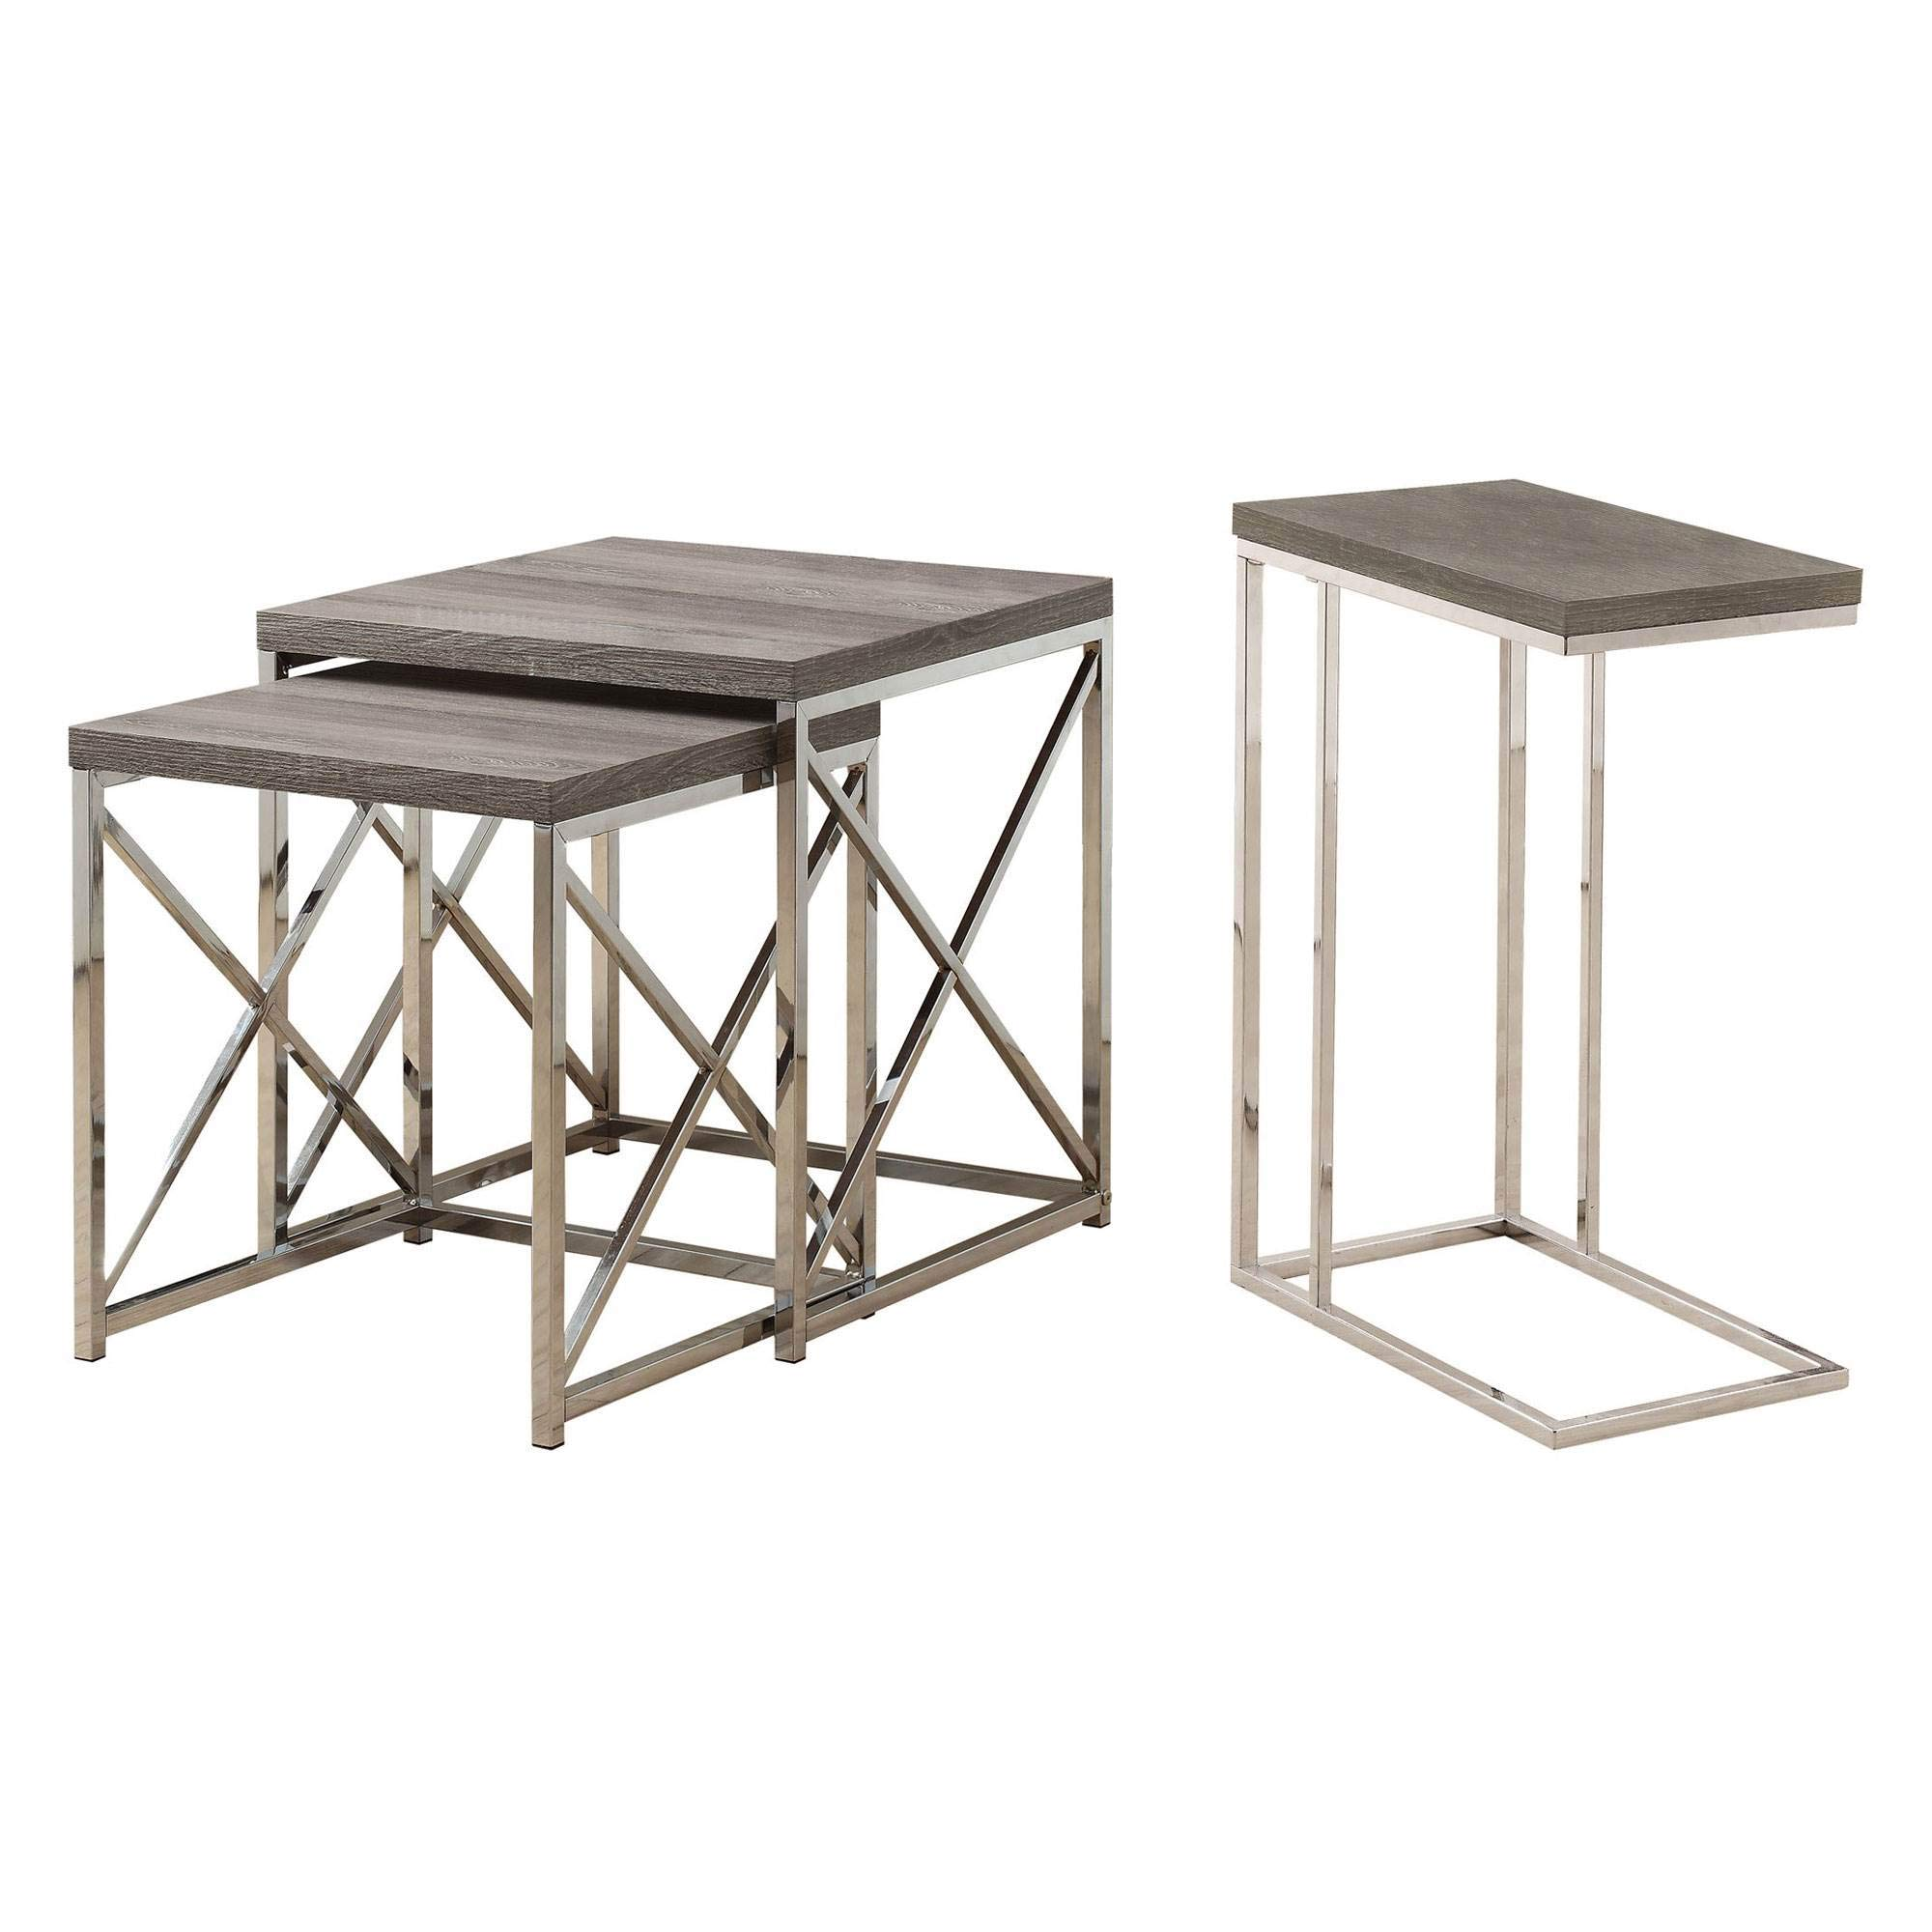 Monarch Contemporary Accent 2-Piece Dark Taupe Nesting End Tables & Side Table by Monarch Specialties